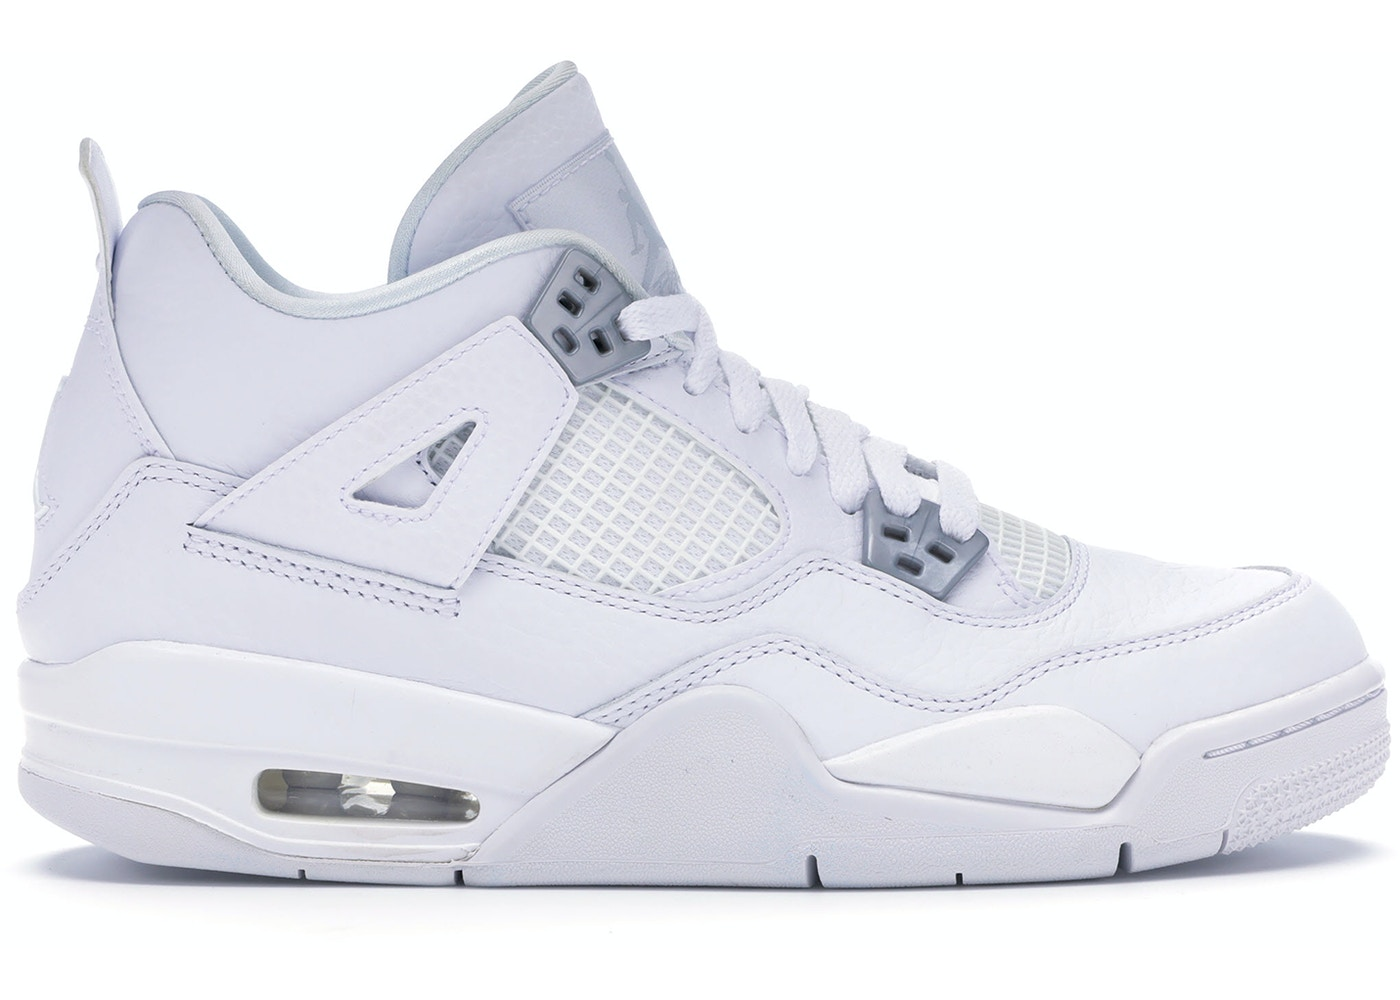 sale retailer 166ad 8c1e5 Jordan 4 Retro Pure Money 2017 (GS) - 408452-100